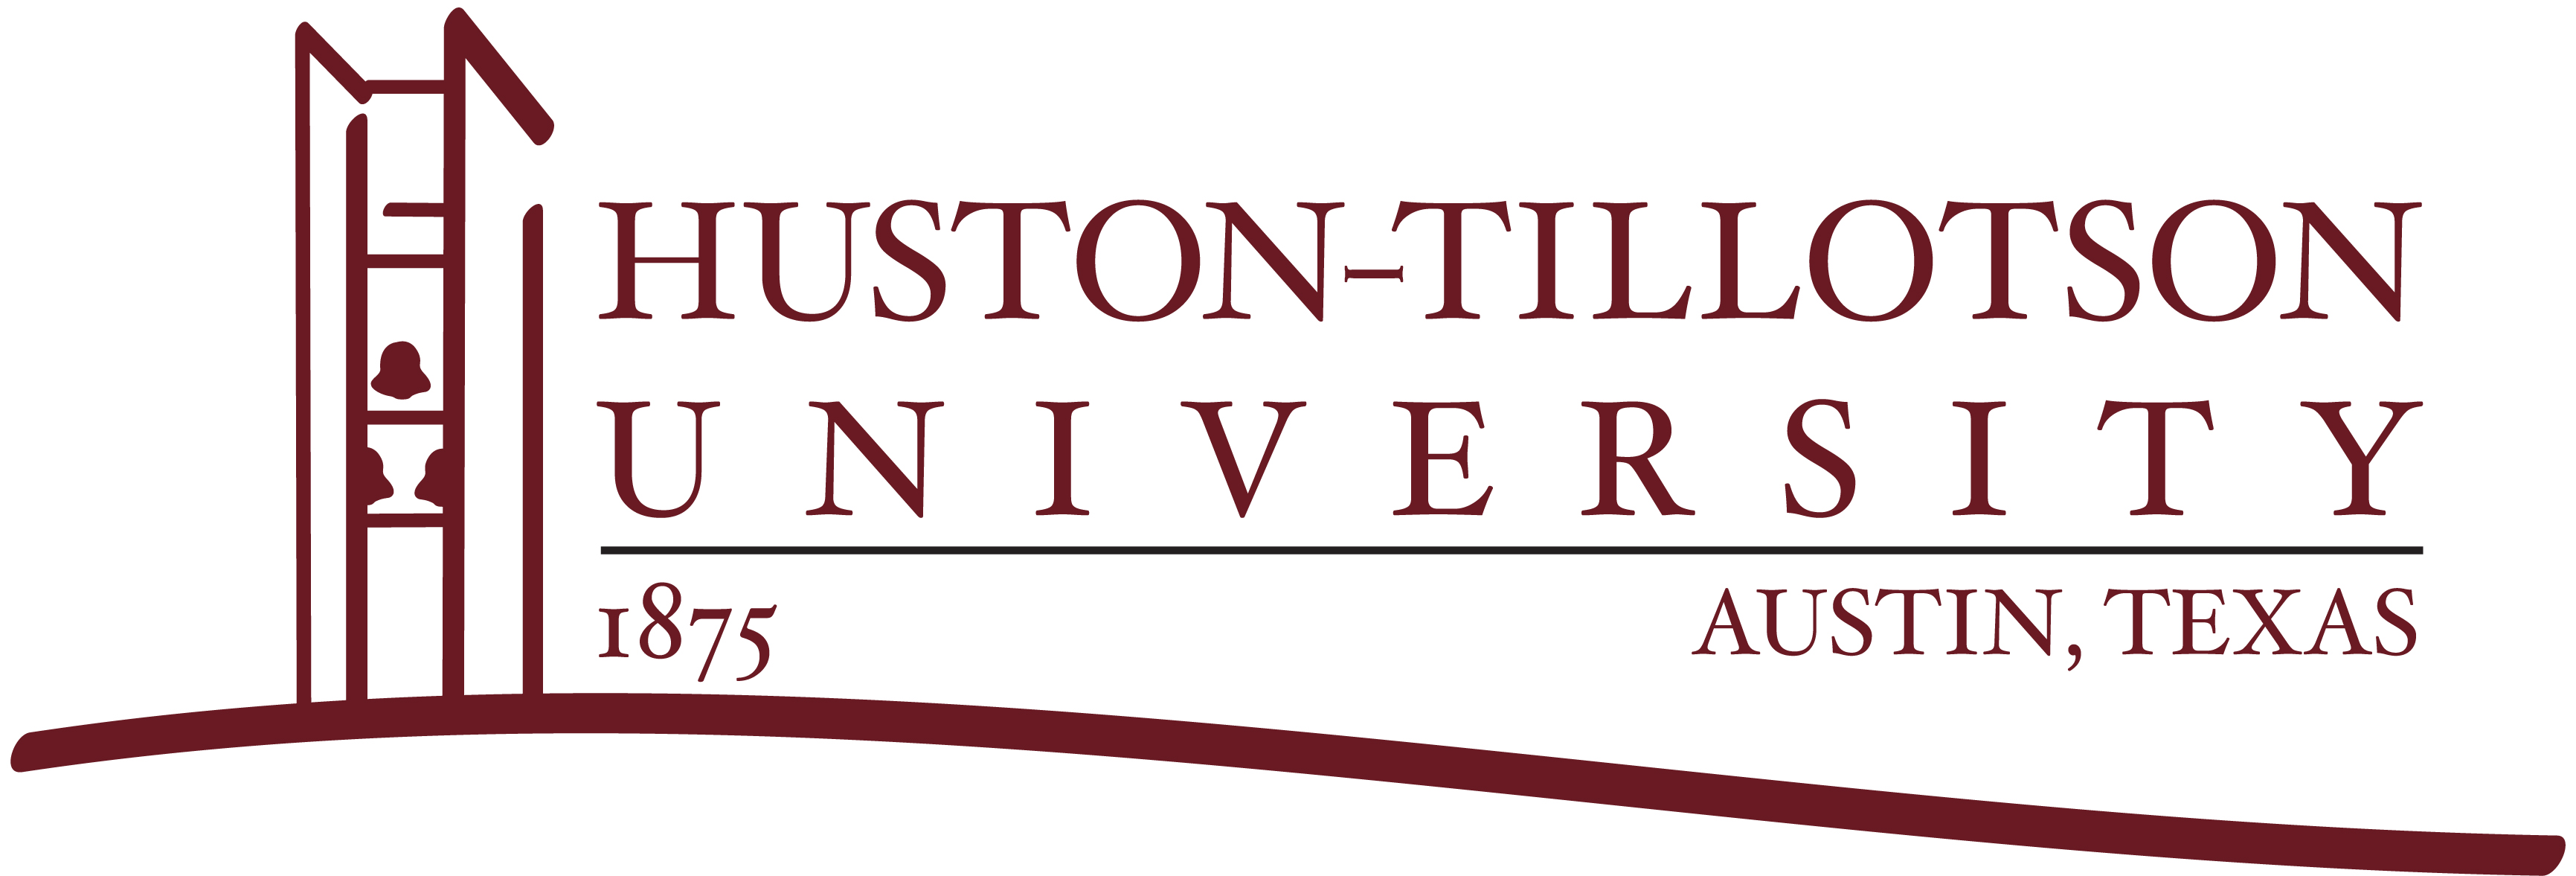 logo for Huston-Tillotson University